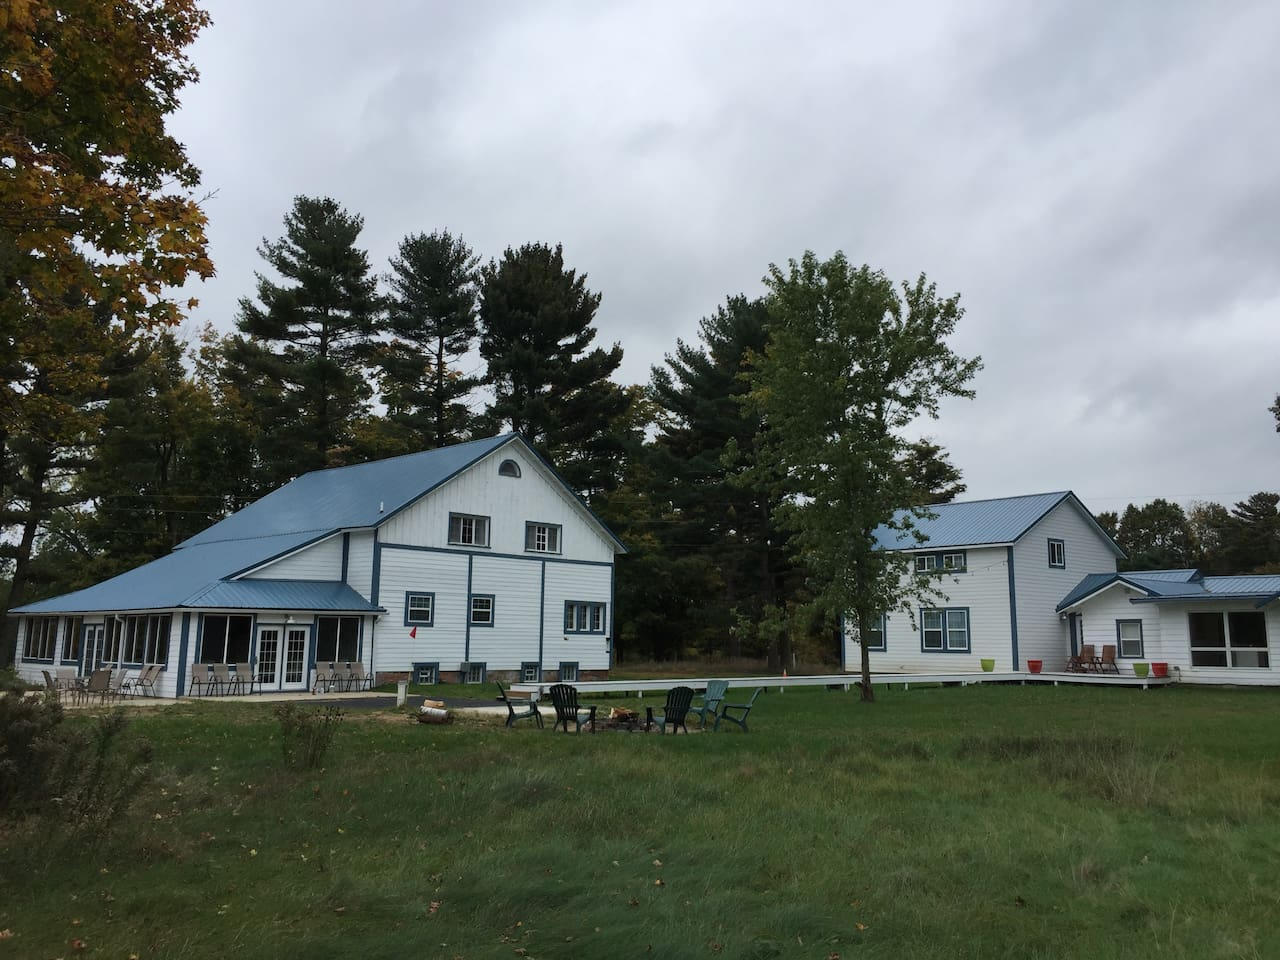 Two buildings sitting on 3 acres of property